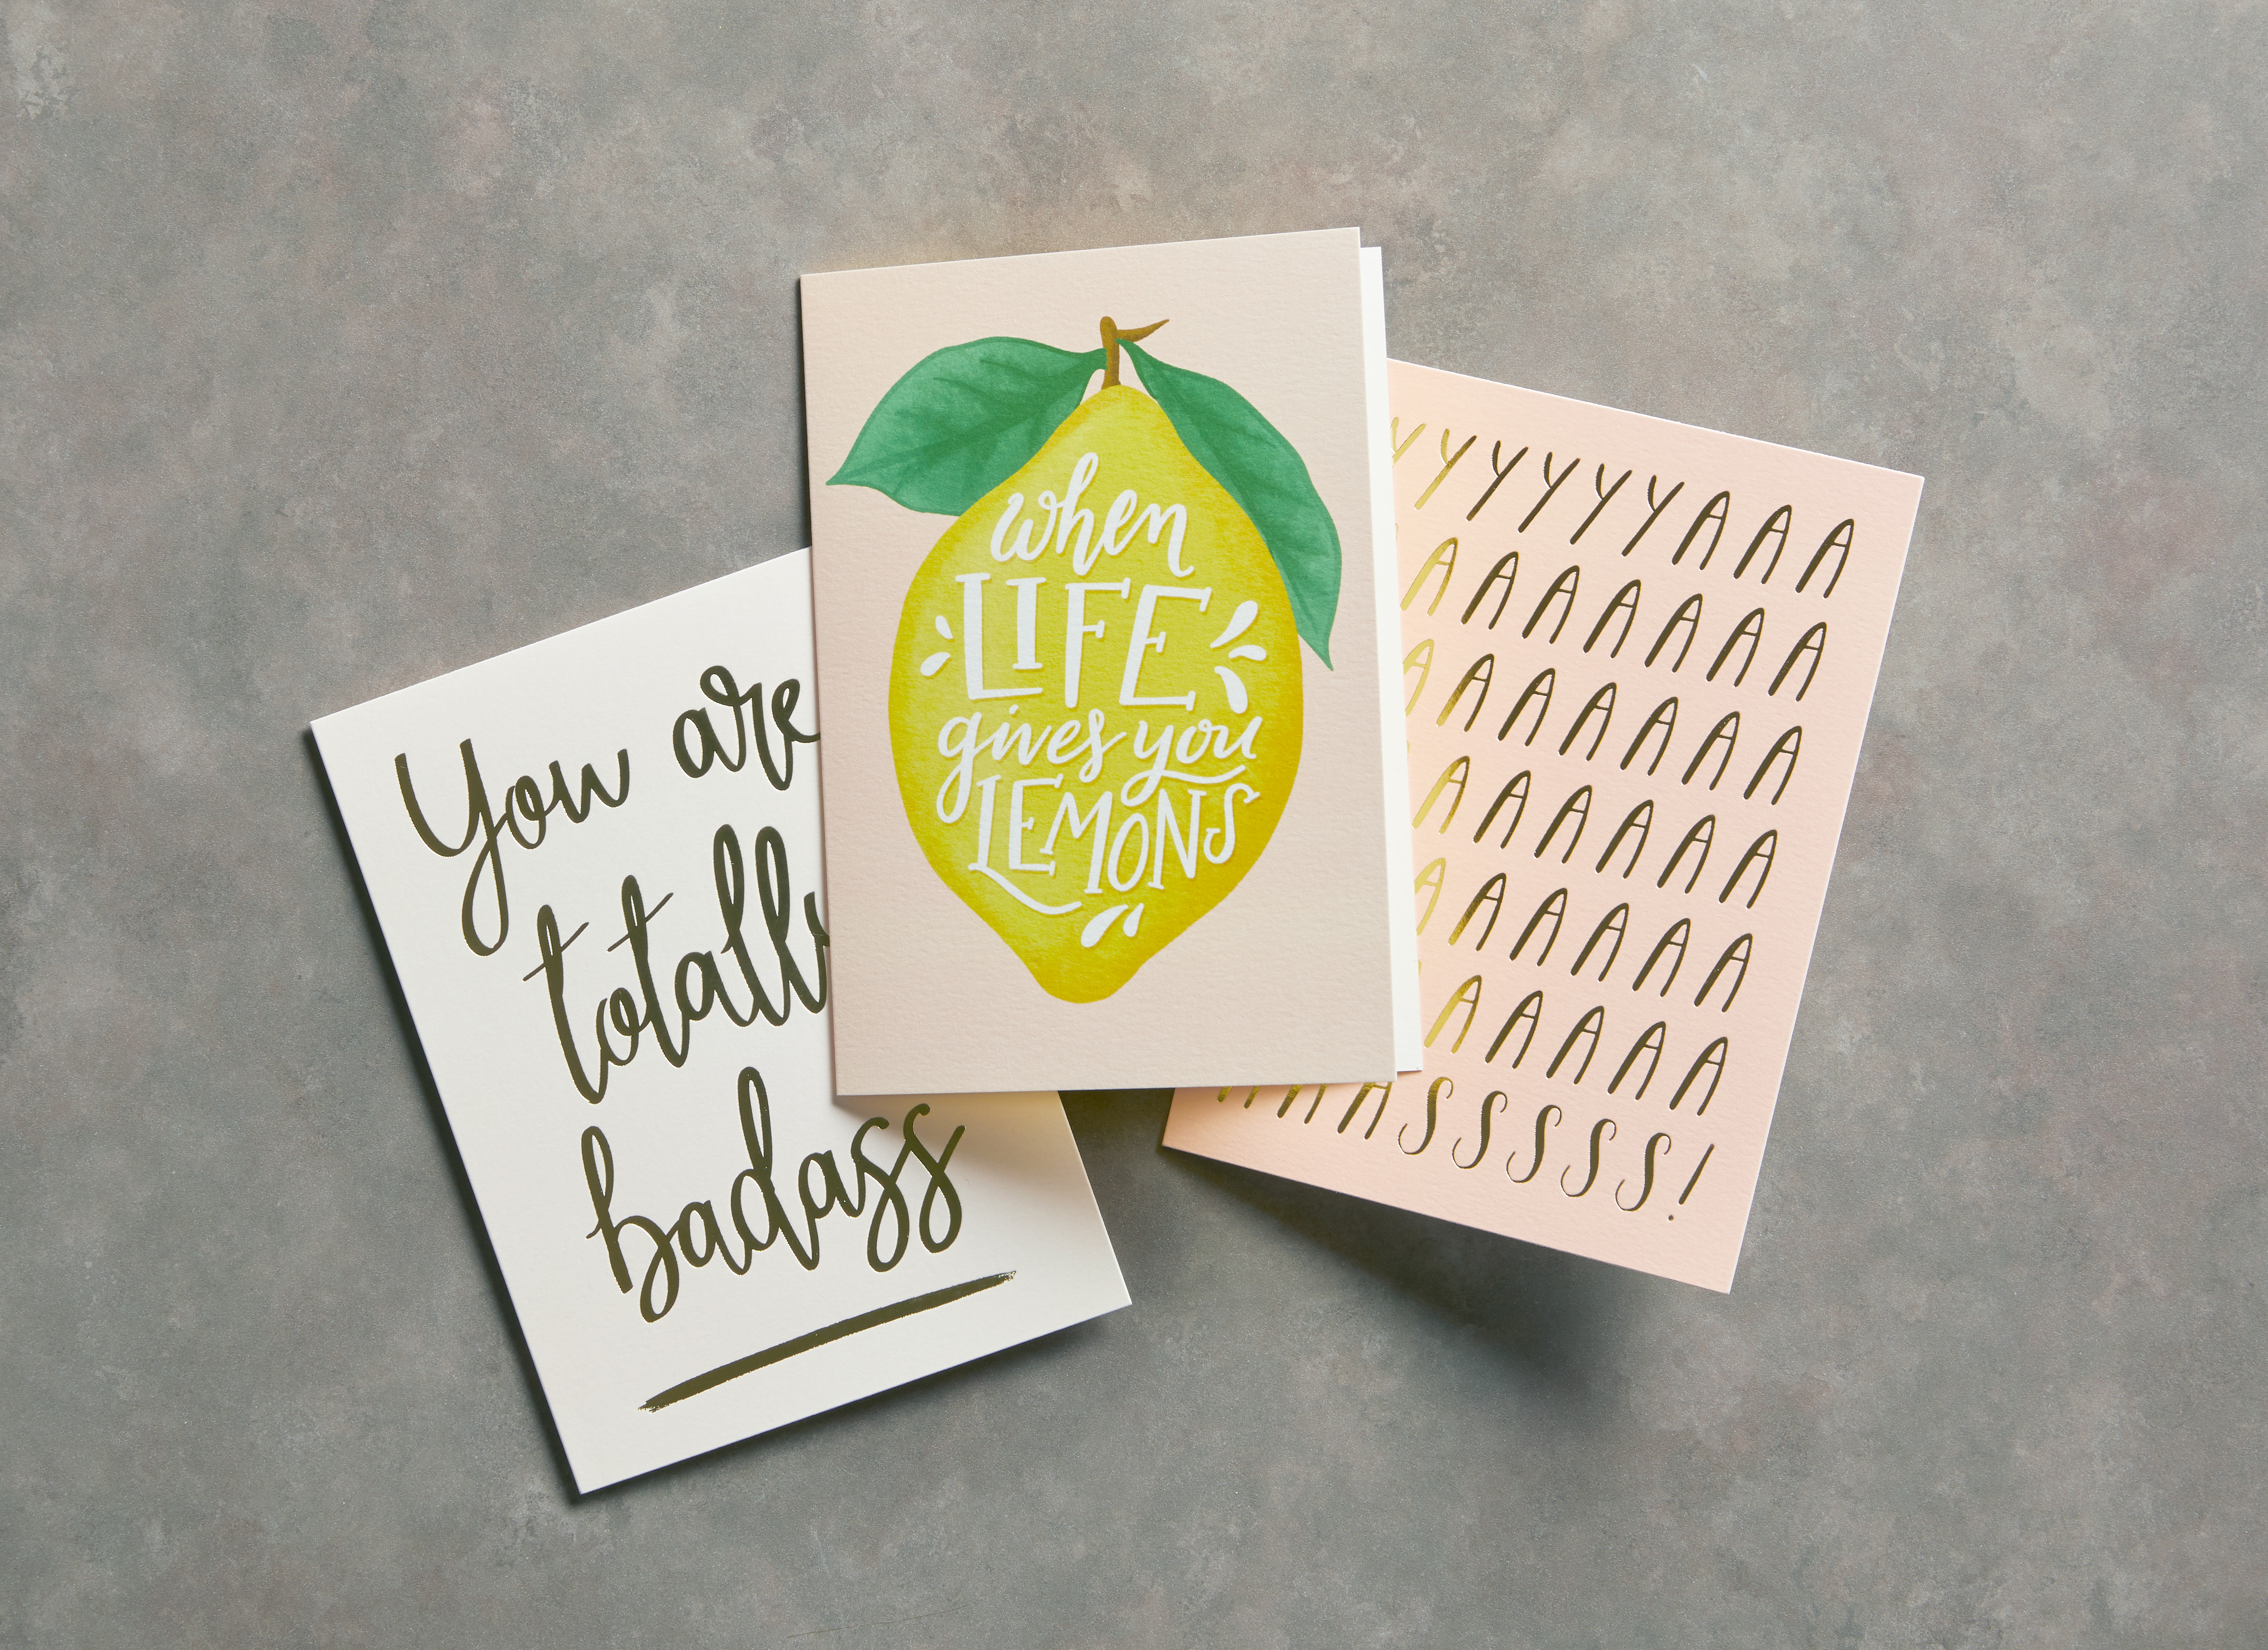 Three greeting cards on a gray surface